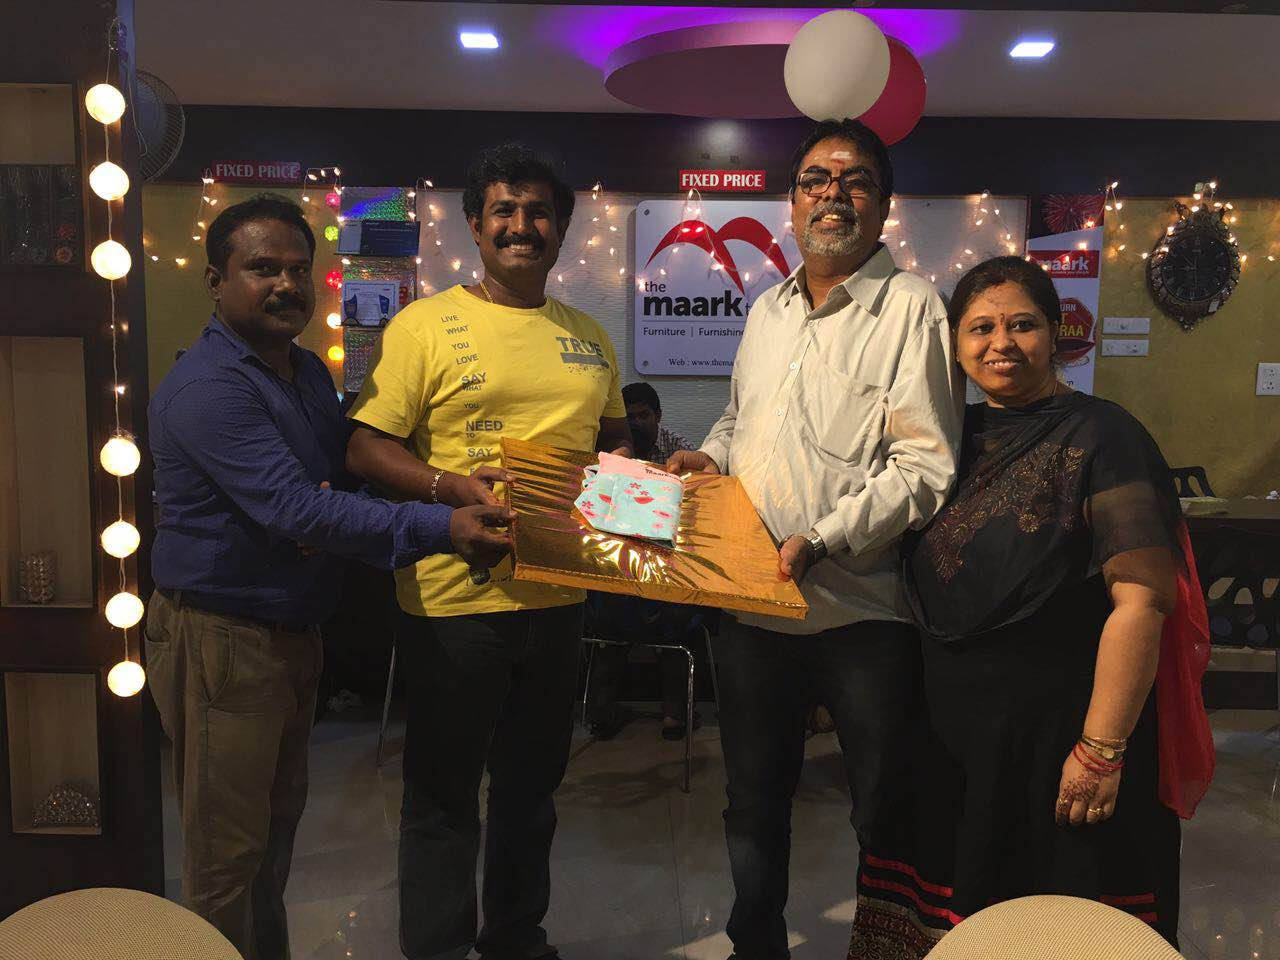 We are happy to do the service to our VIP customer Mr.Krishnan sir and family, pleasure to serve.diwali sale is going on ..one big reason to get furniture to your home for this Diwali ..get extra Diwali ..no 1 furniture retail showroom in Coimbatore .